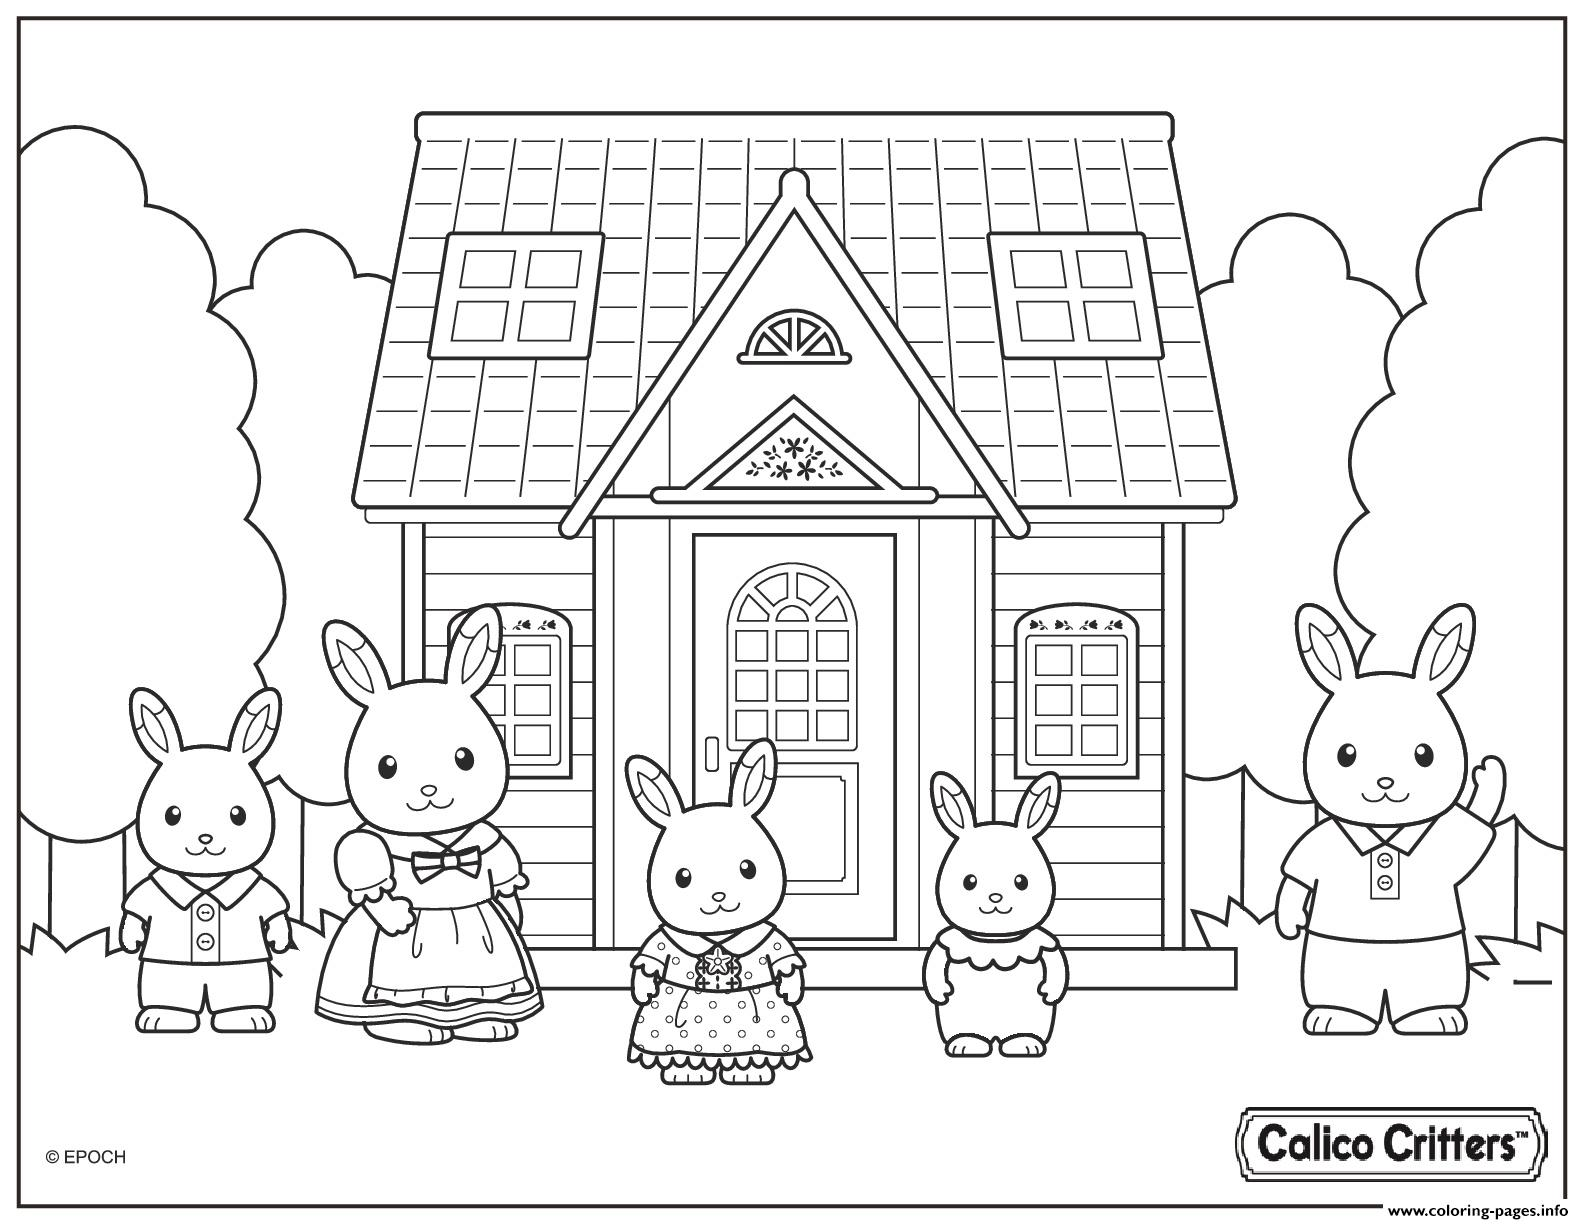 calico critters cute family coloring pages - Family Coloring Pages